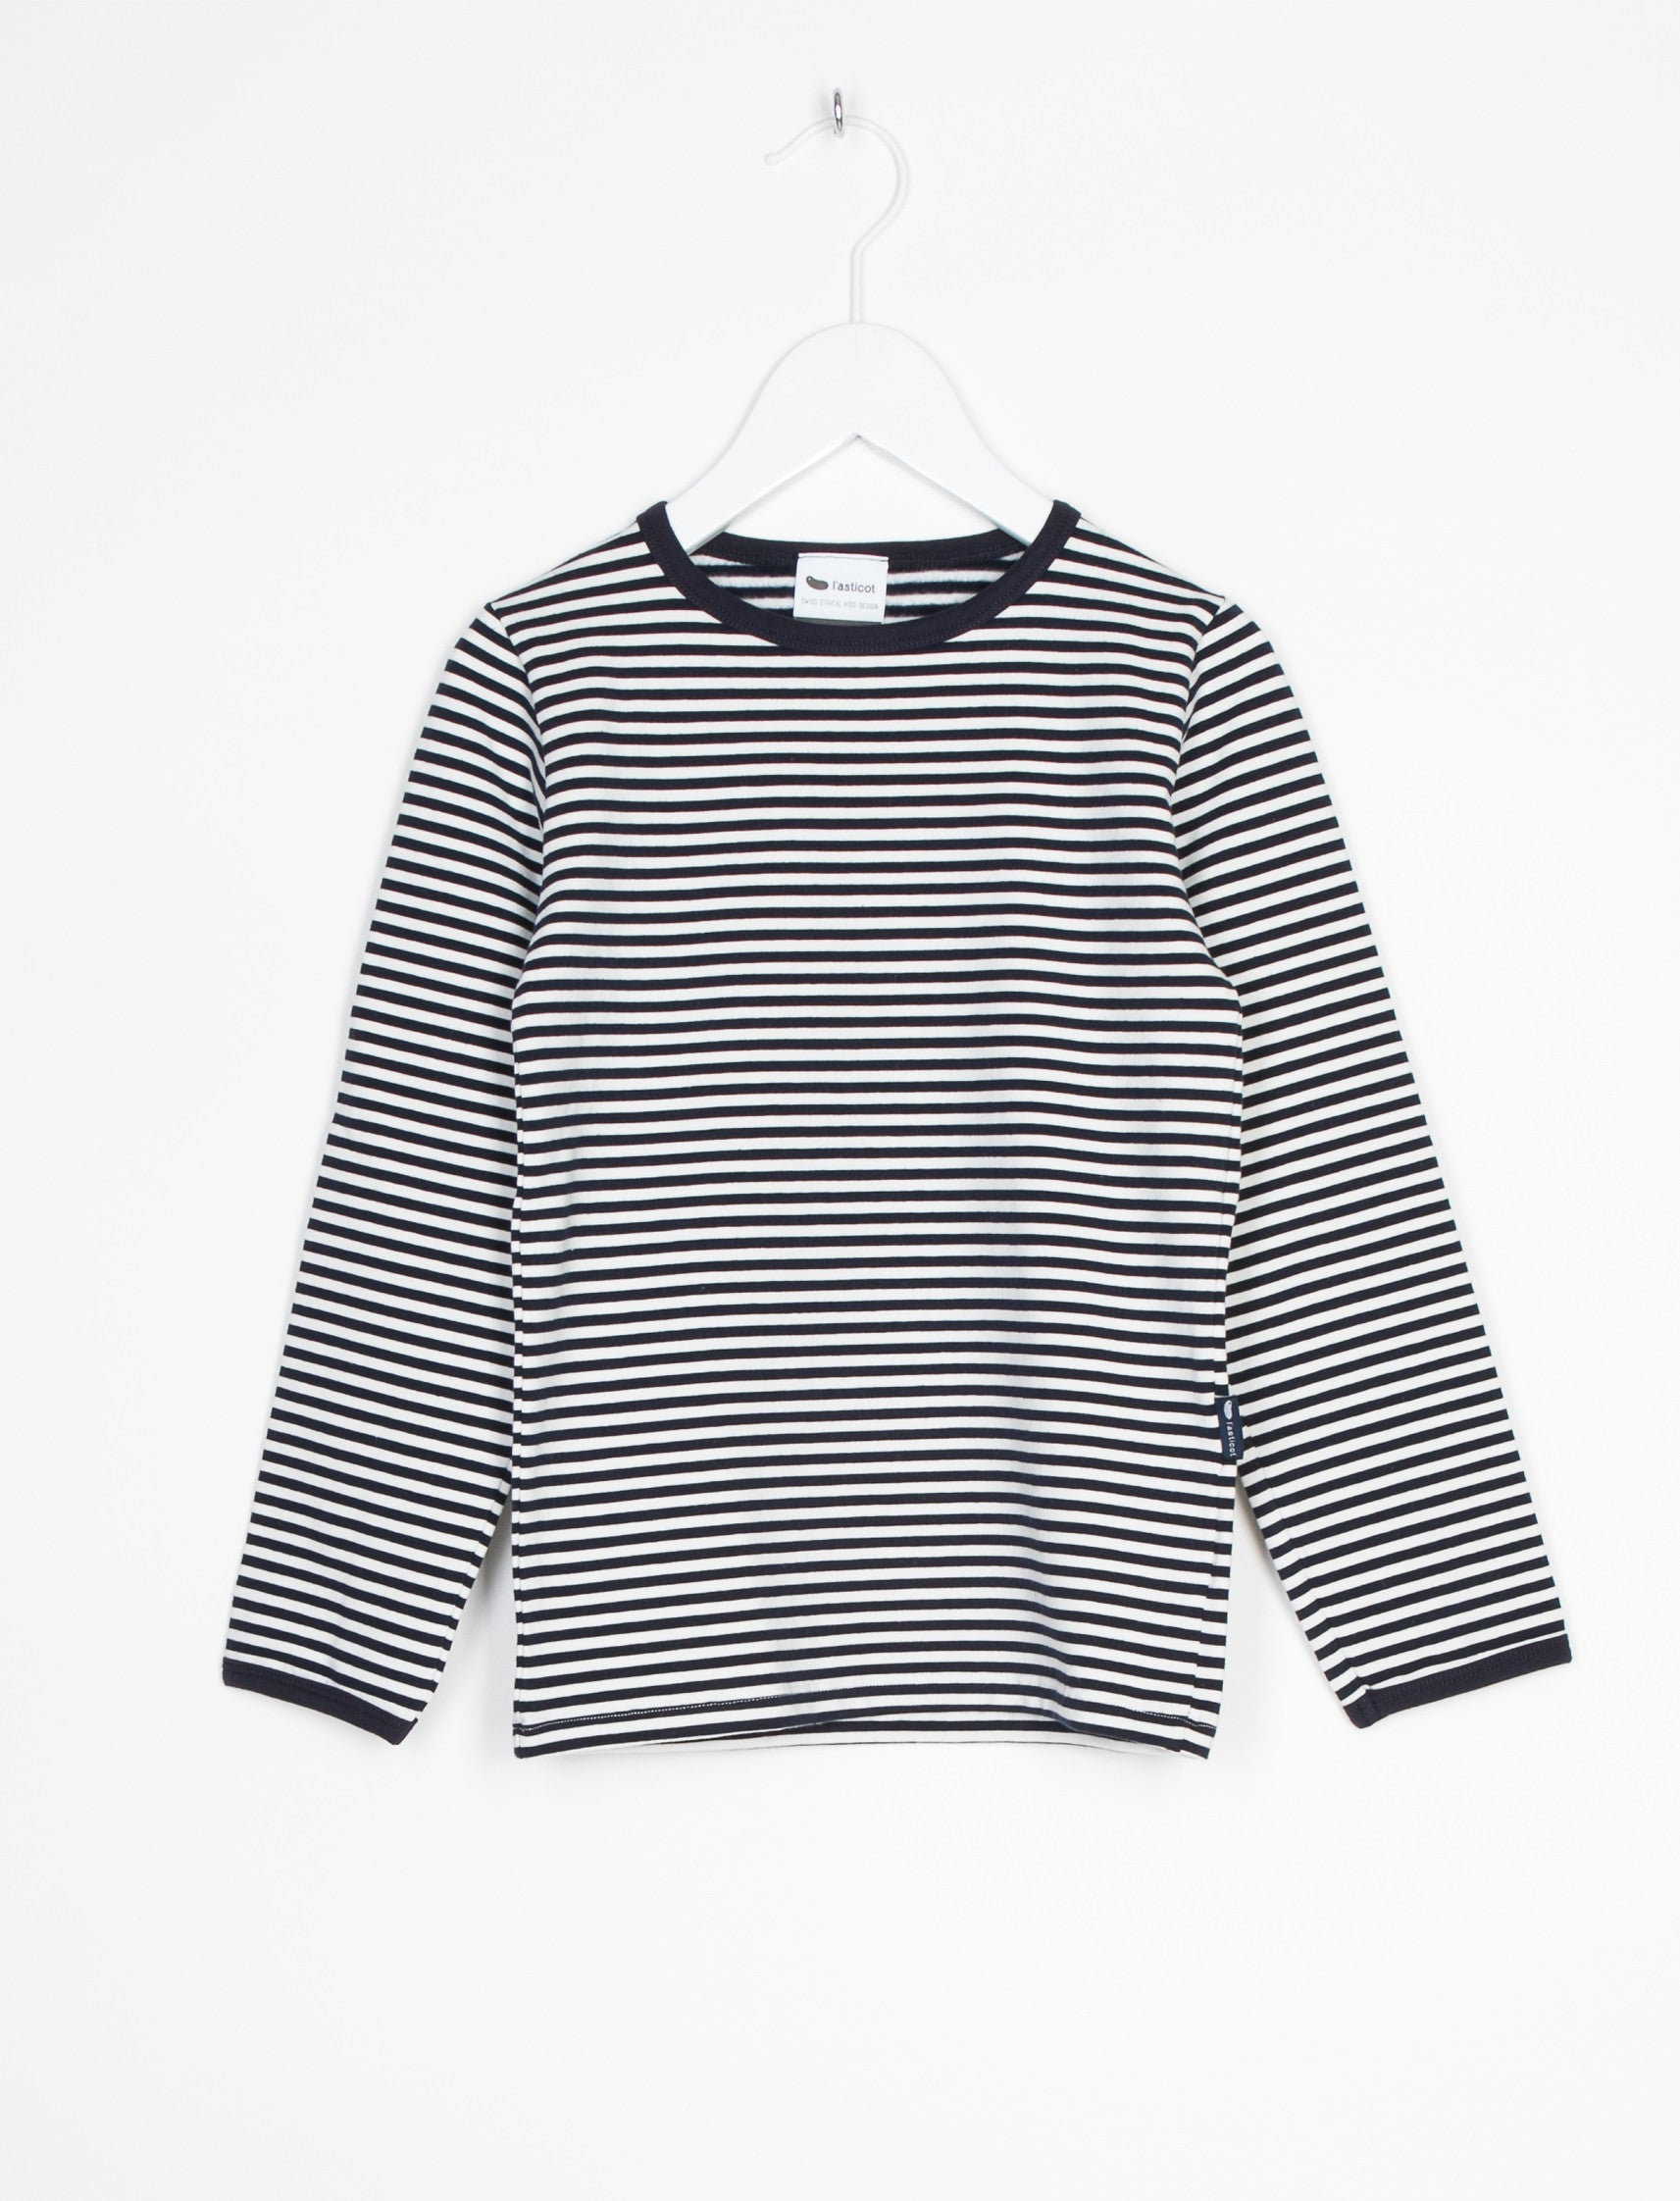 L'ASTICOT ORGANIC COTTON TEE BLUE STRIPES-TOP-L'ASTICOT-Billie & Axel, Montreal, Canada & USA